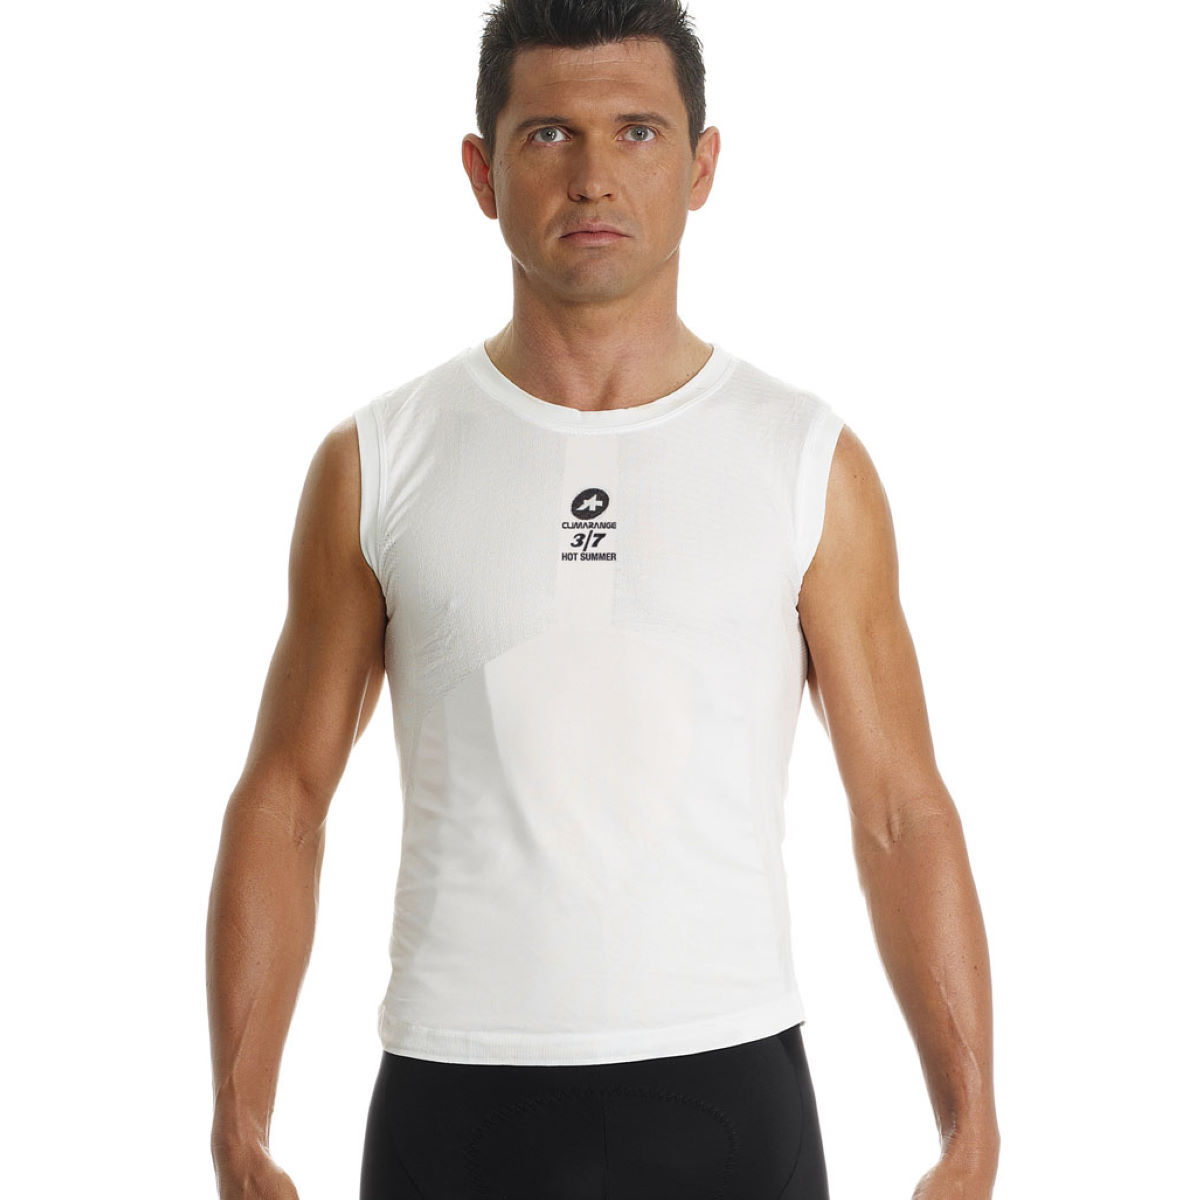 Assos NS.skinFoil_hotsummer Sleeveless Base Layer